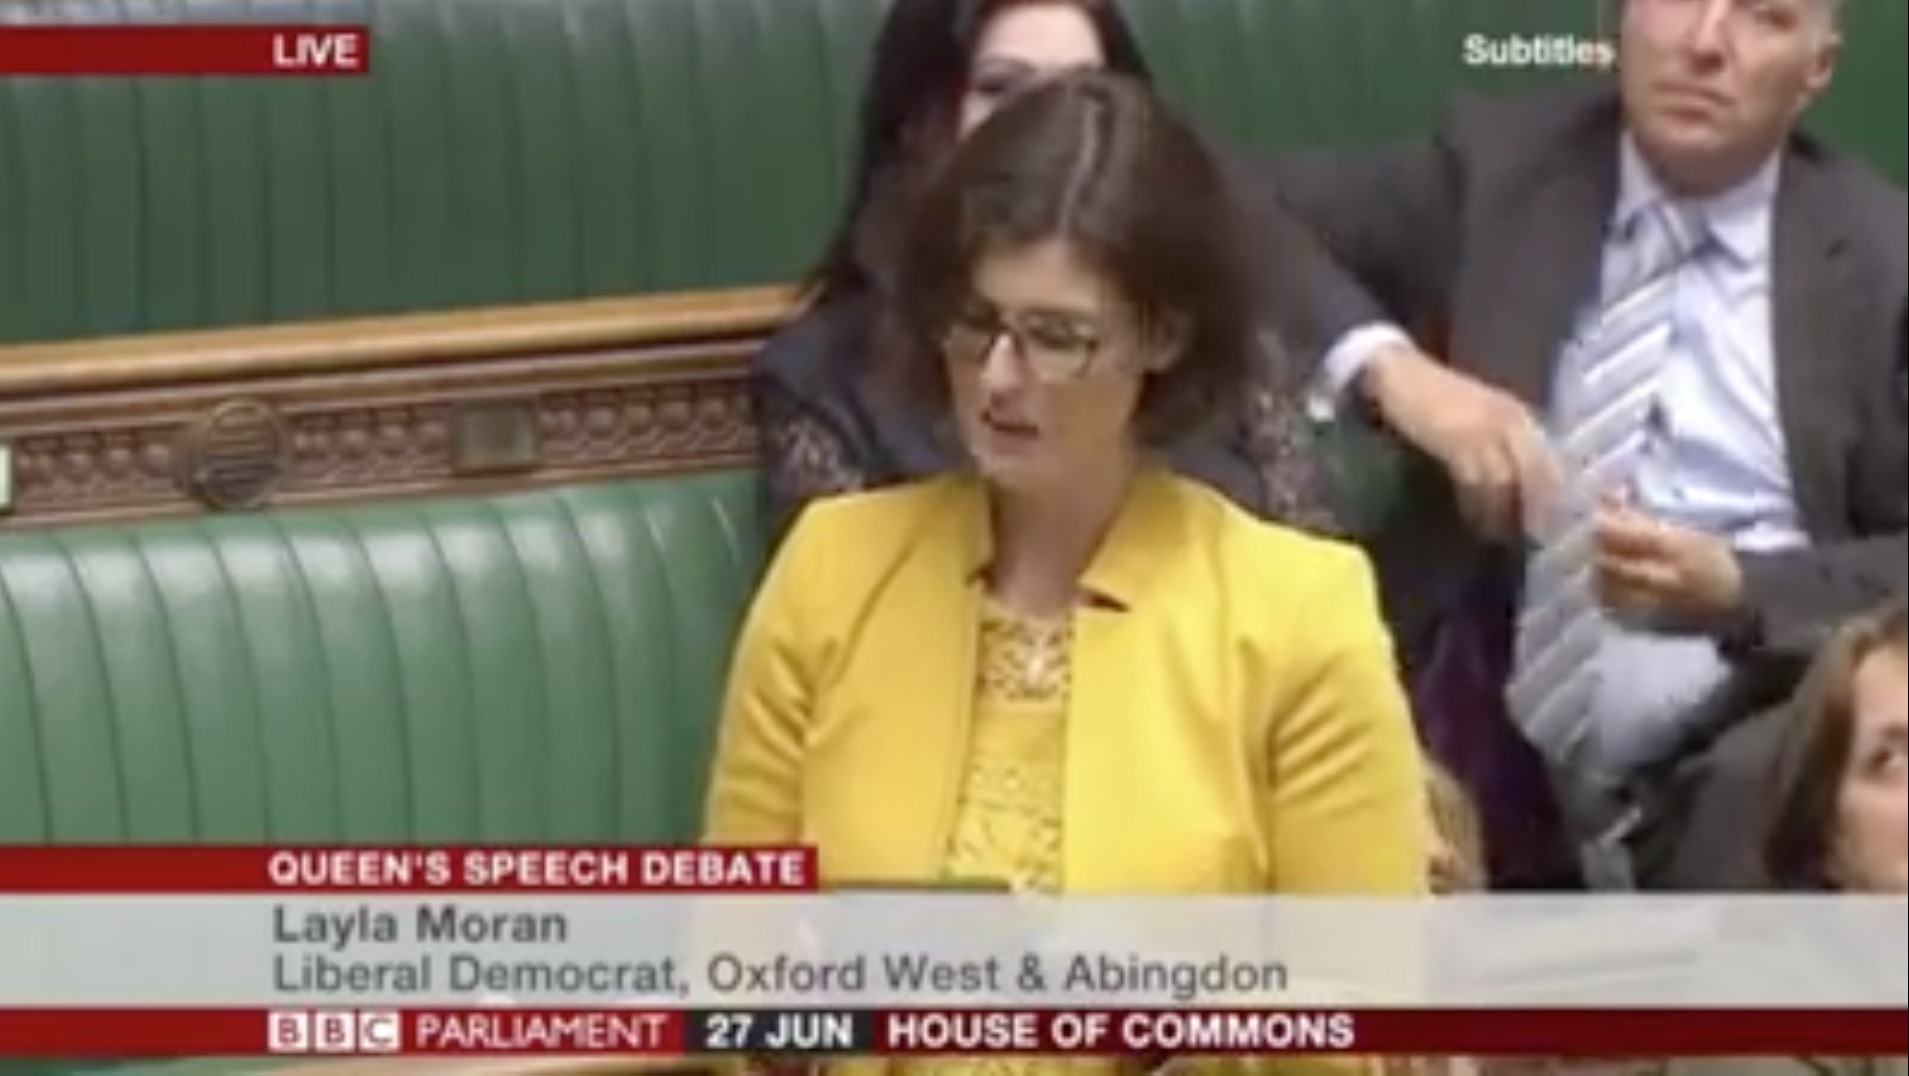 Impressive debut for Layla Moran as our new MP